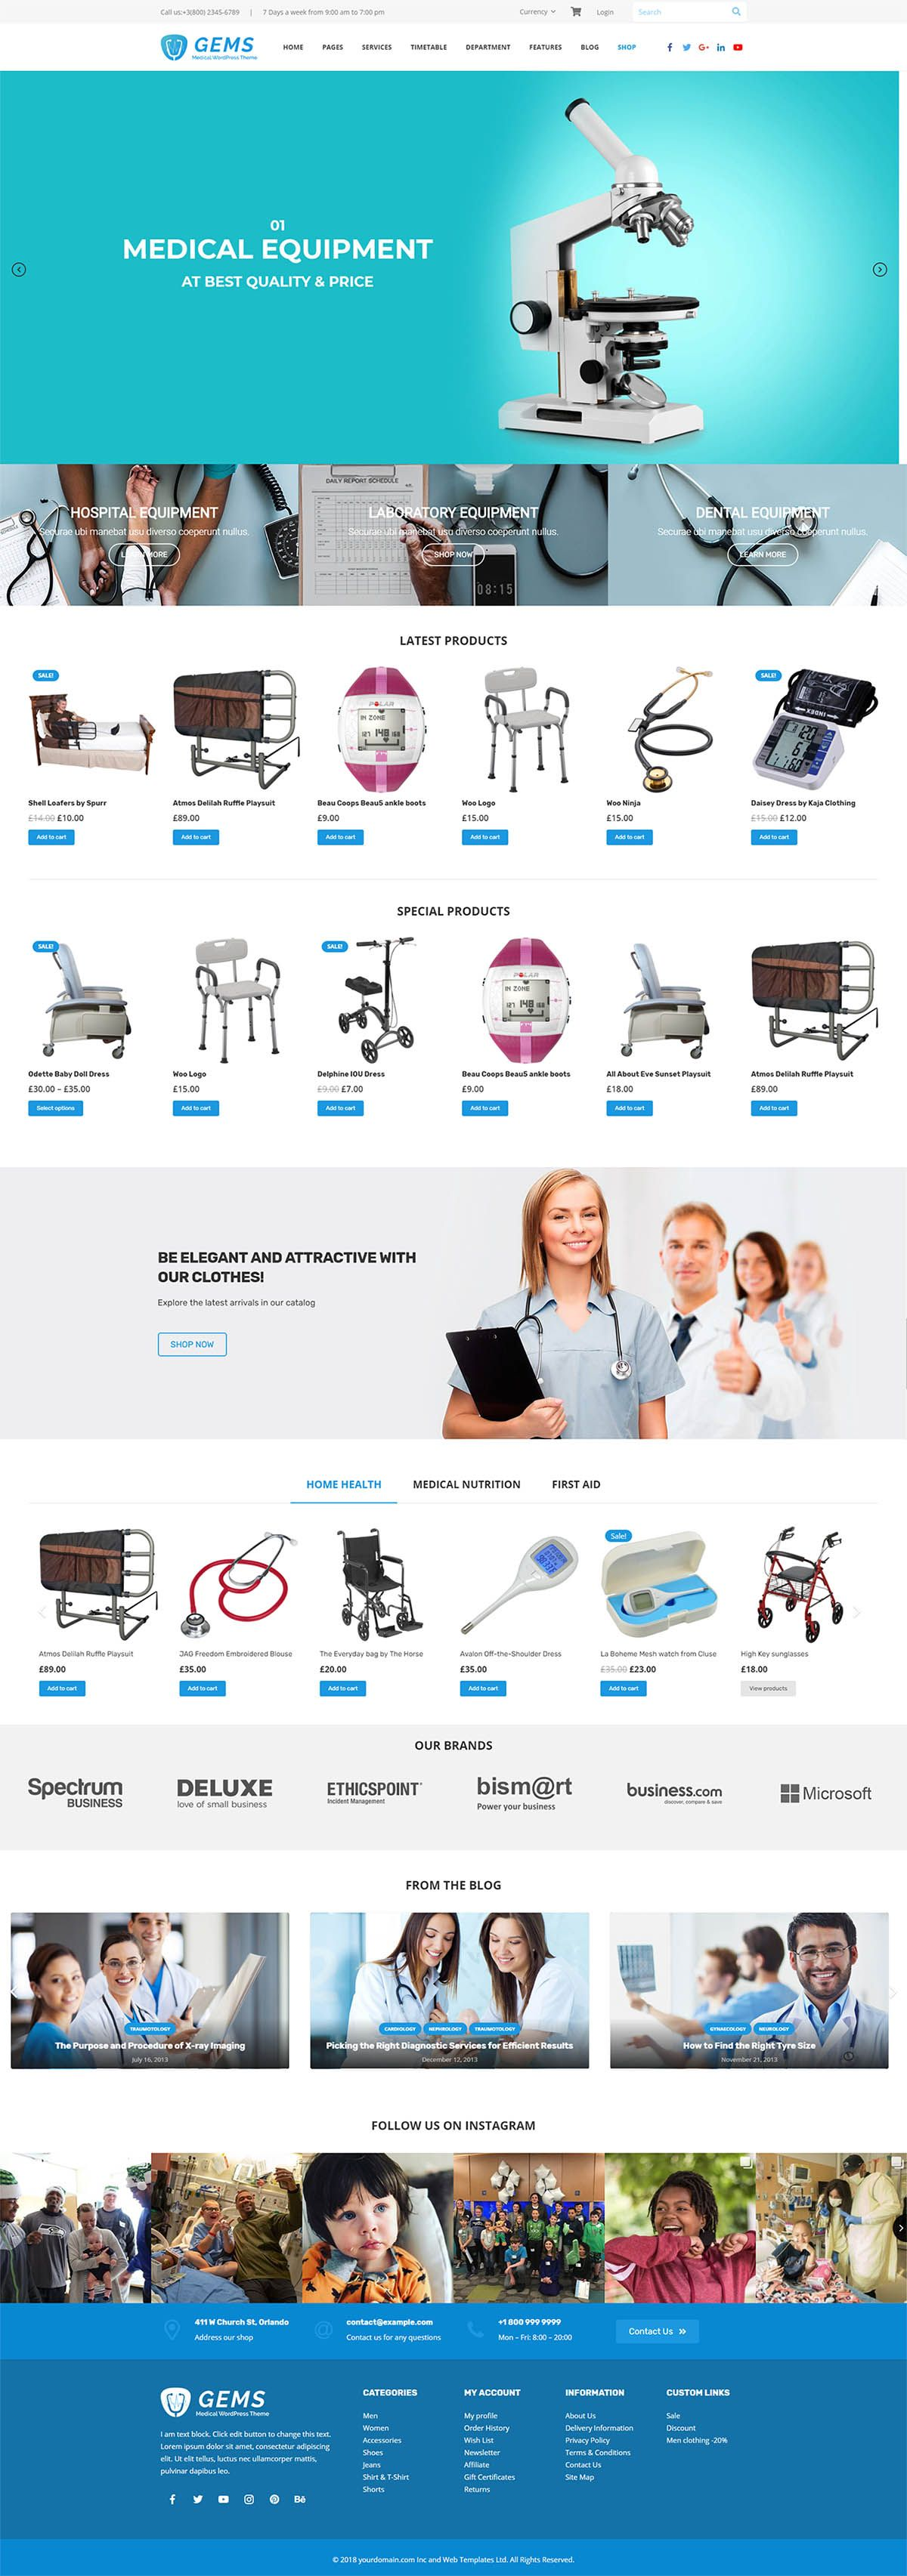 Gems - Medical Drag And Drop WordPress Theme Screenshot 9